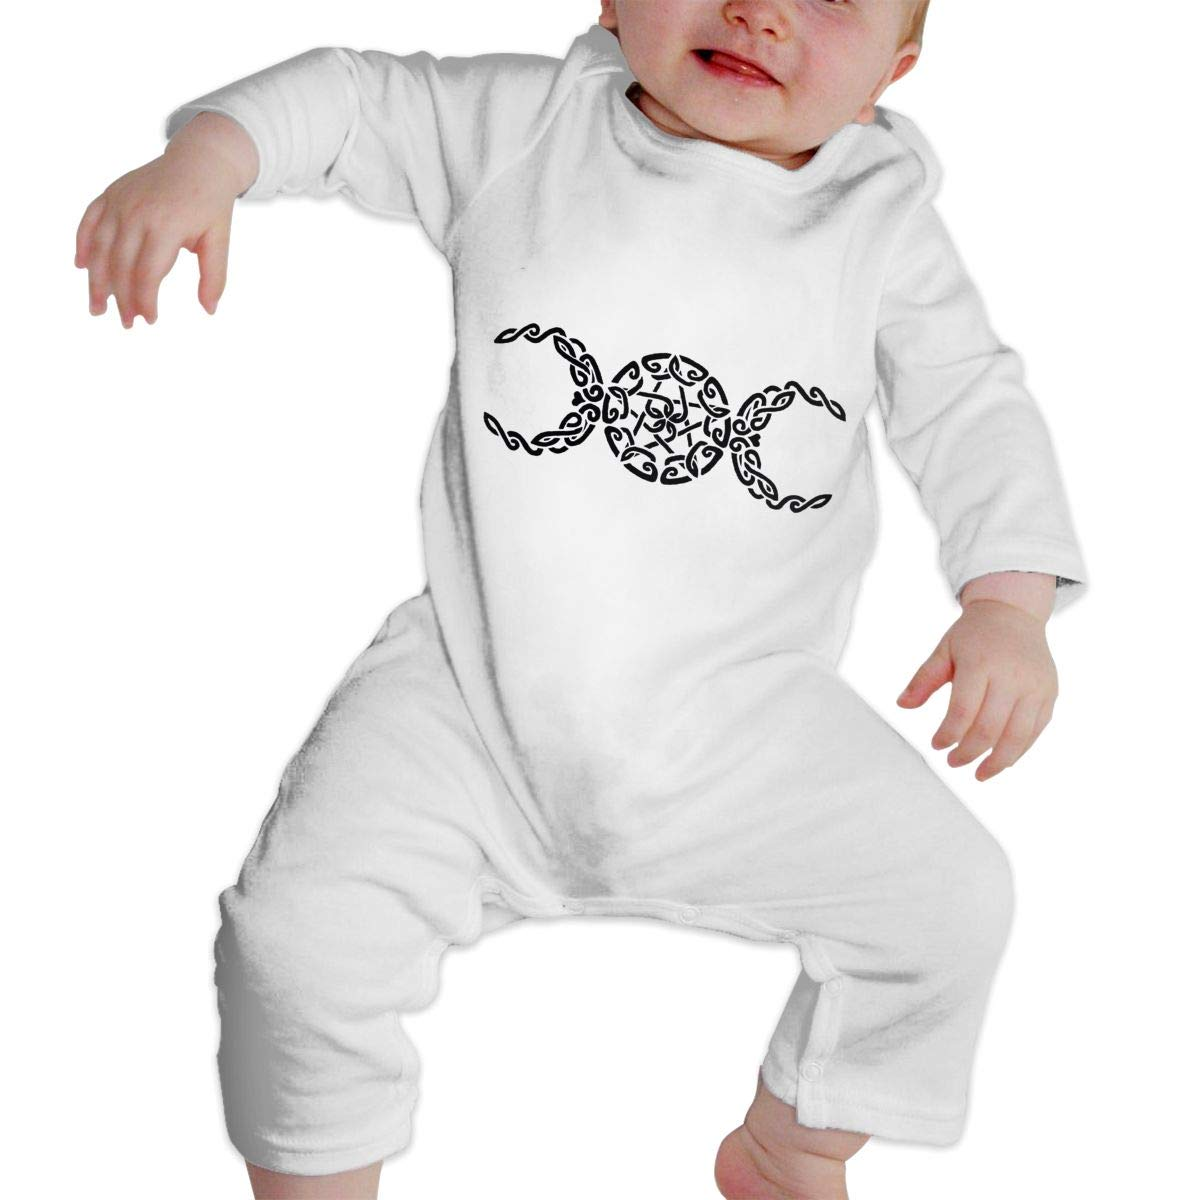 Infant Baby Girls Cotton Long Sleeve Pentacle Crescent Moon Climb Romper Funny Printed Romper Clothes